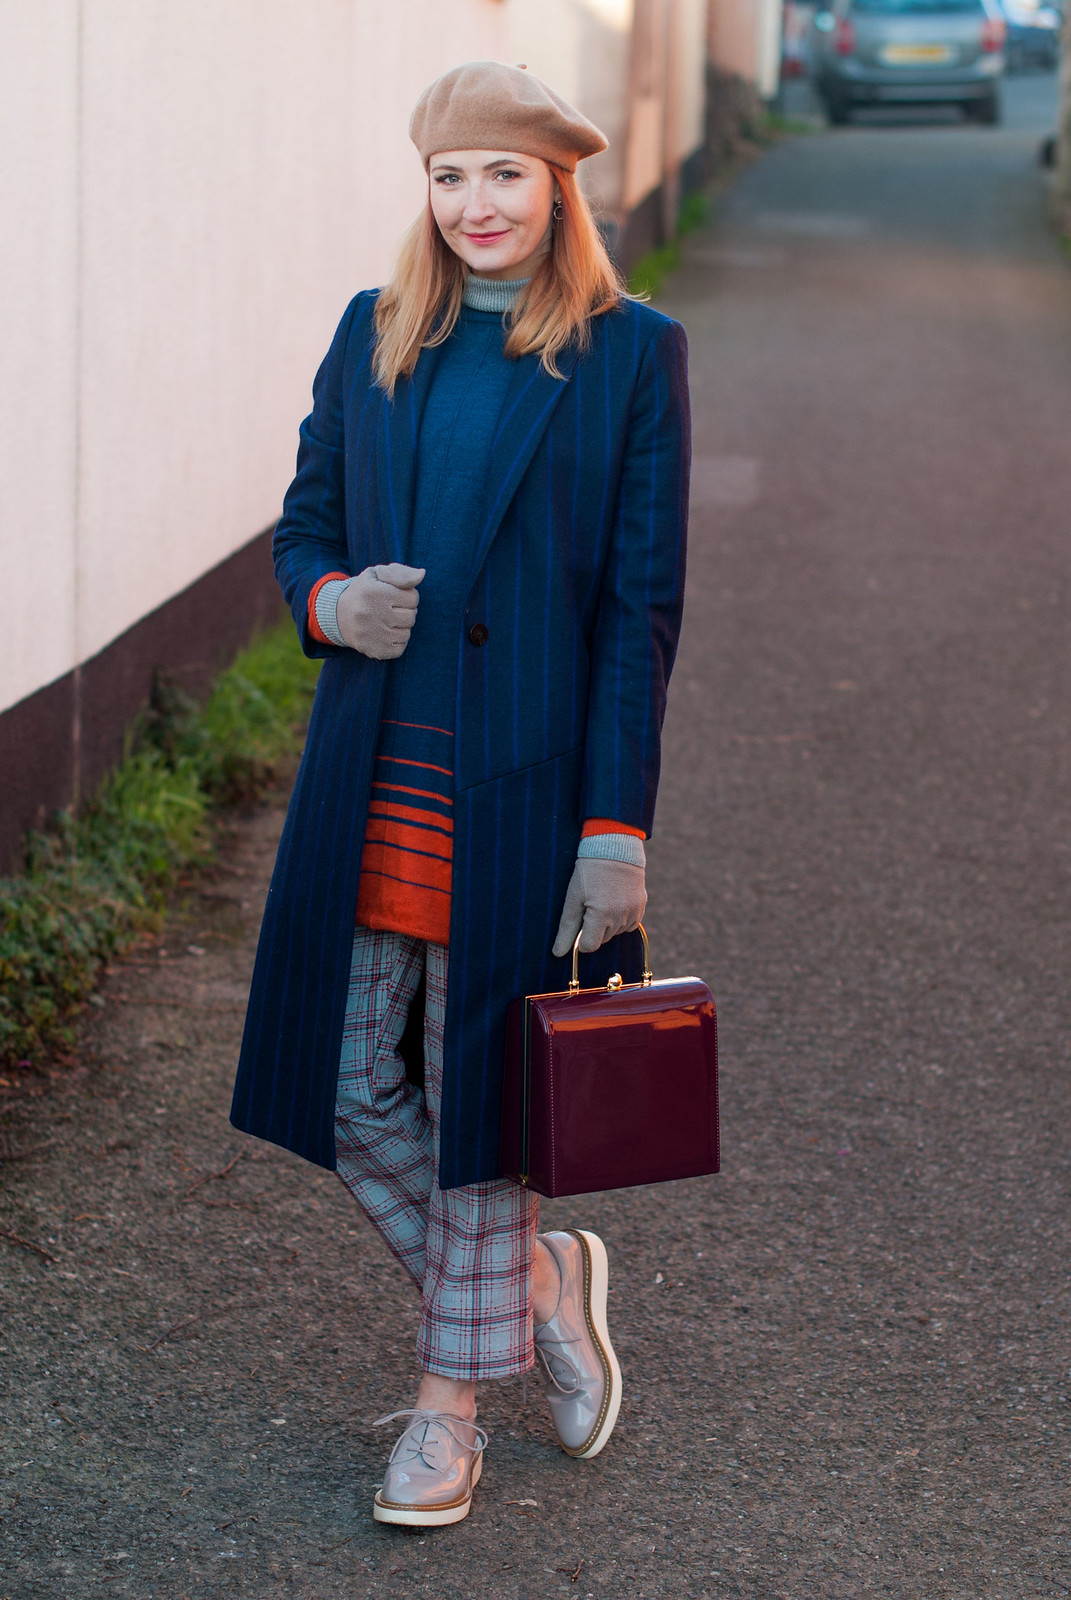 How to style a beret in winter: With a navy pinstripe wool coat, check trousers, a sweater dress and taupe lace ups | Not Dressed As Lamb, over 40 fashion blog